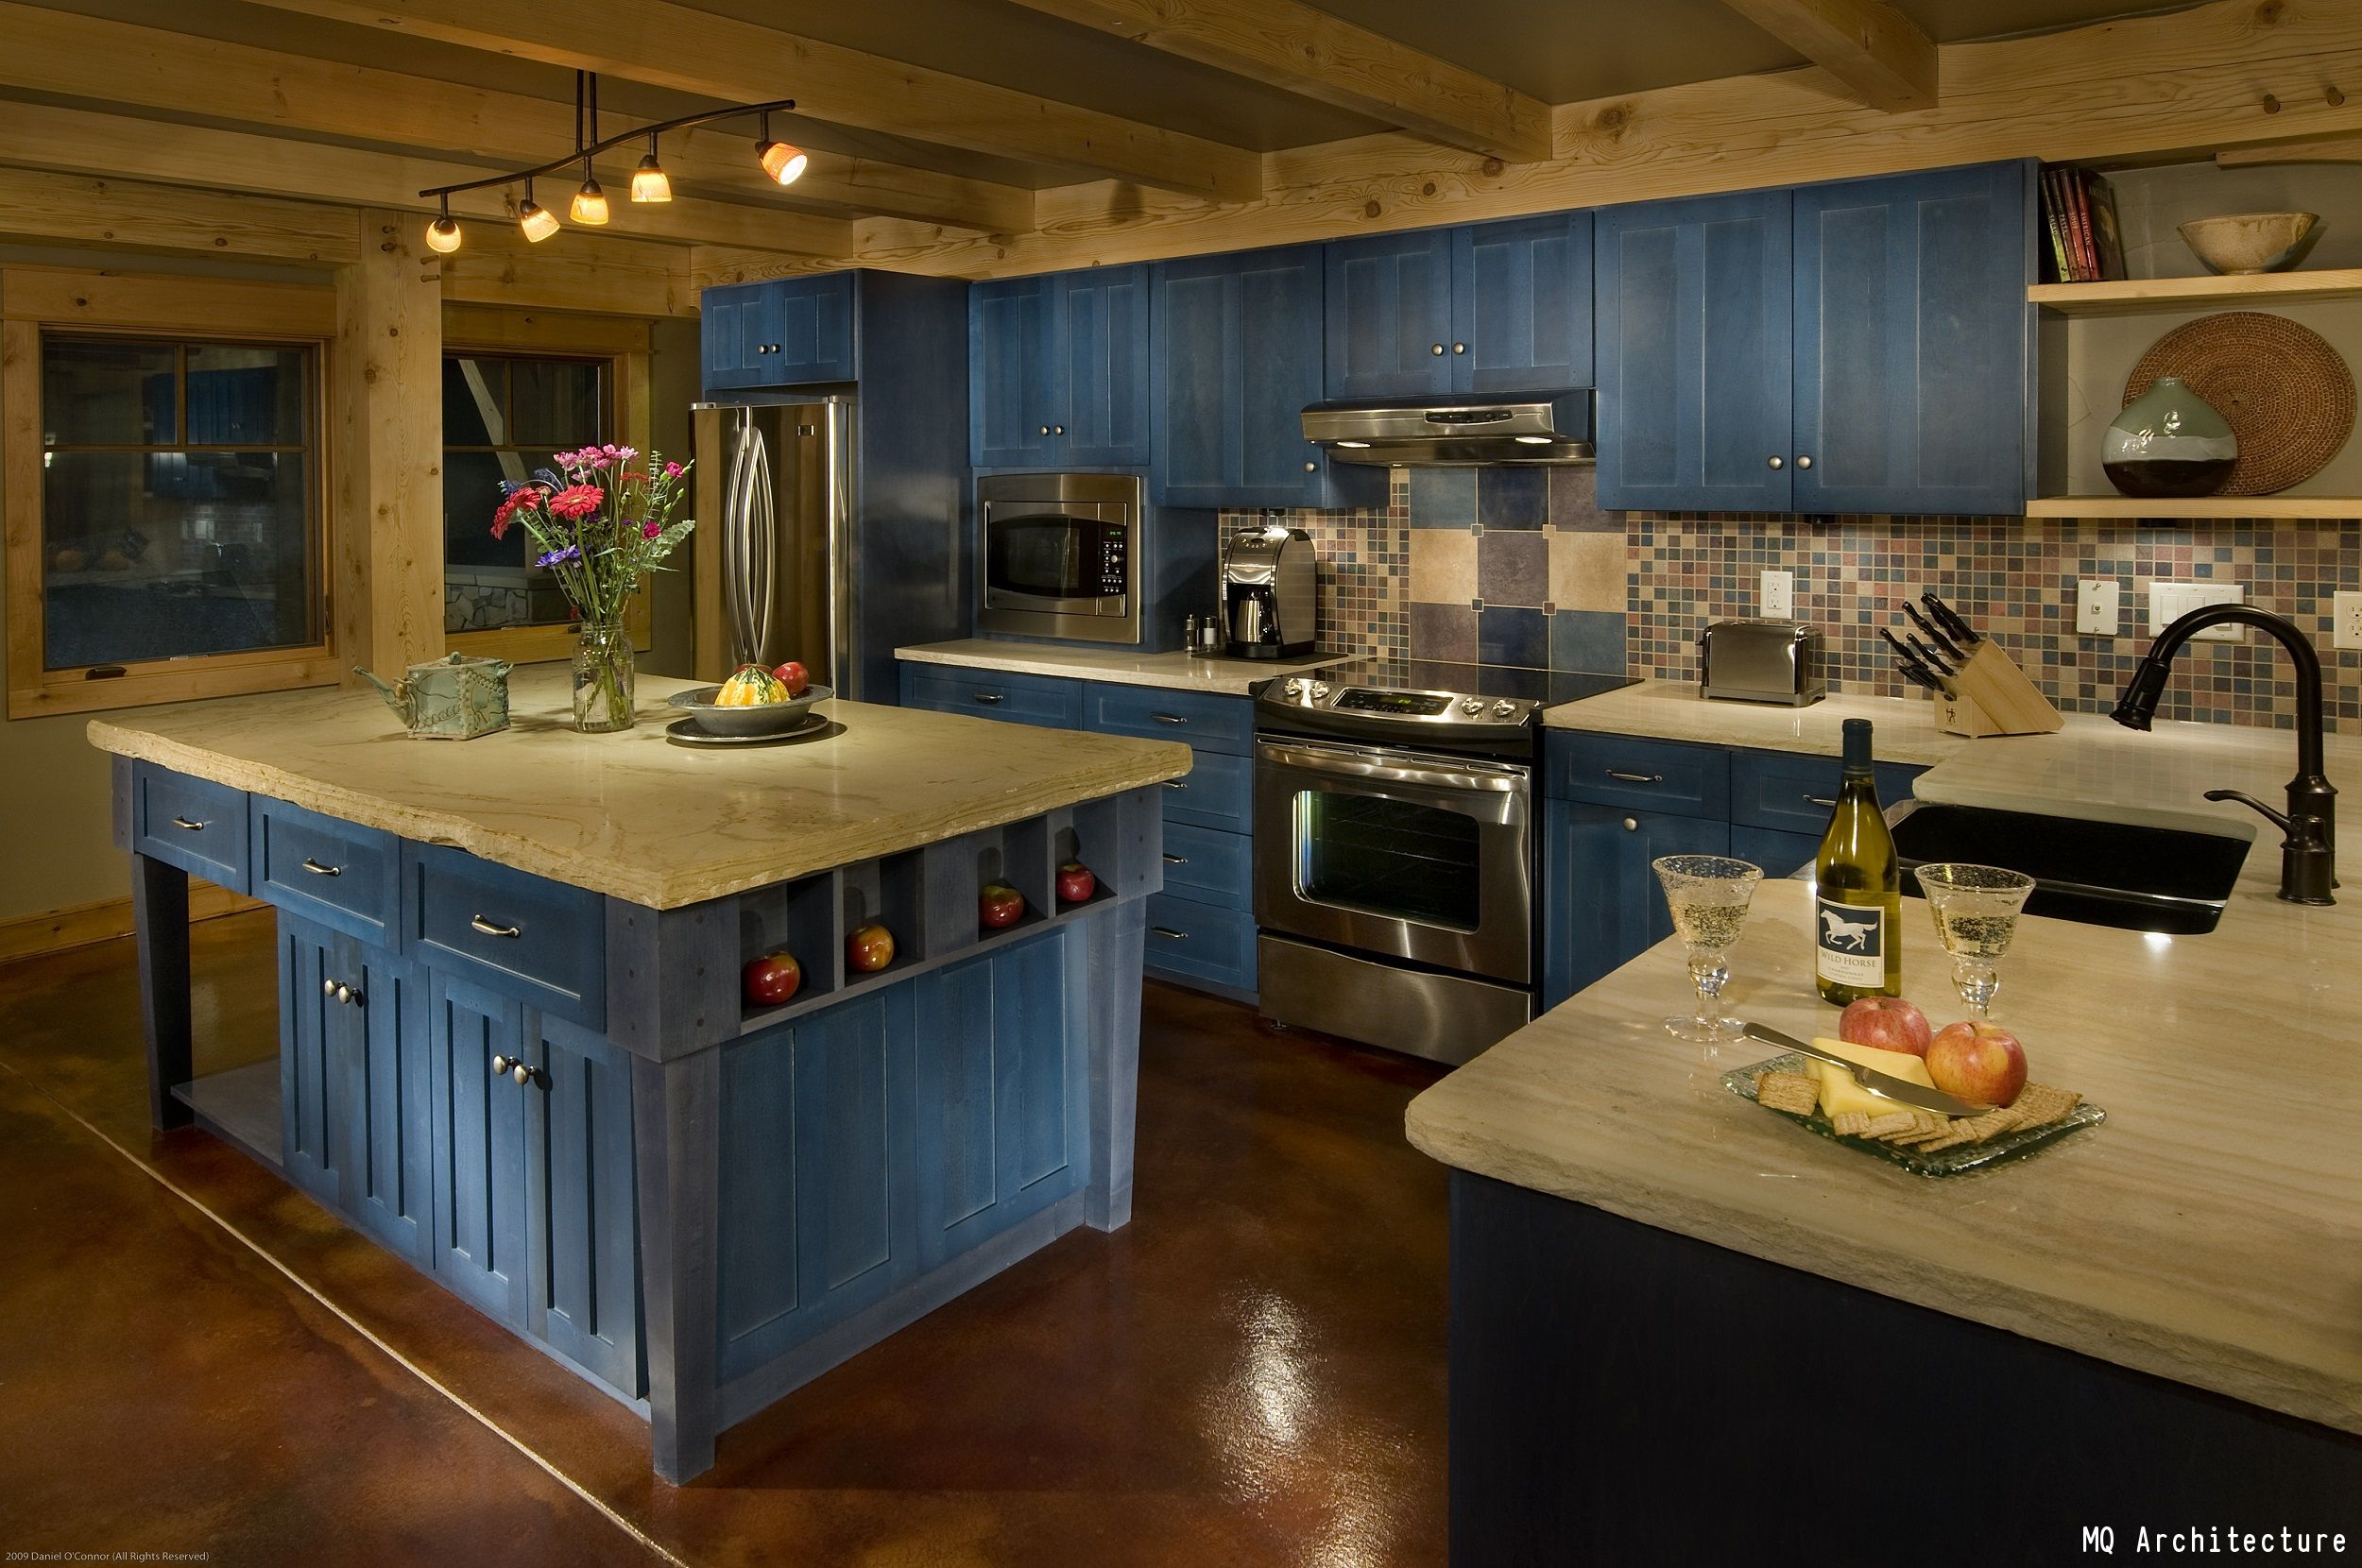 How Much Does It Cost To Remodel A Kitchen? | Arquitectura ...